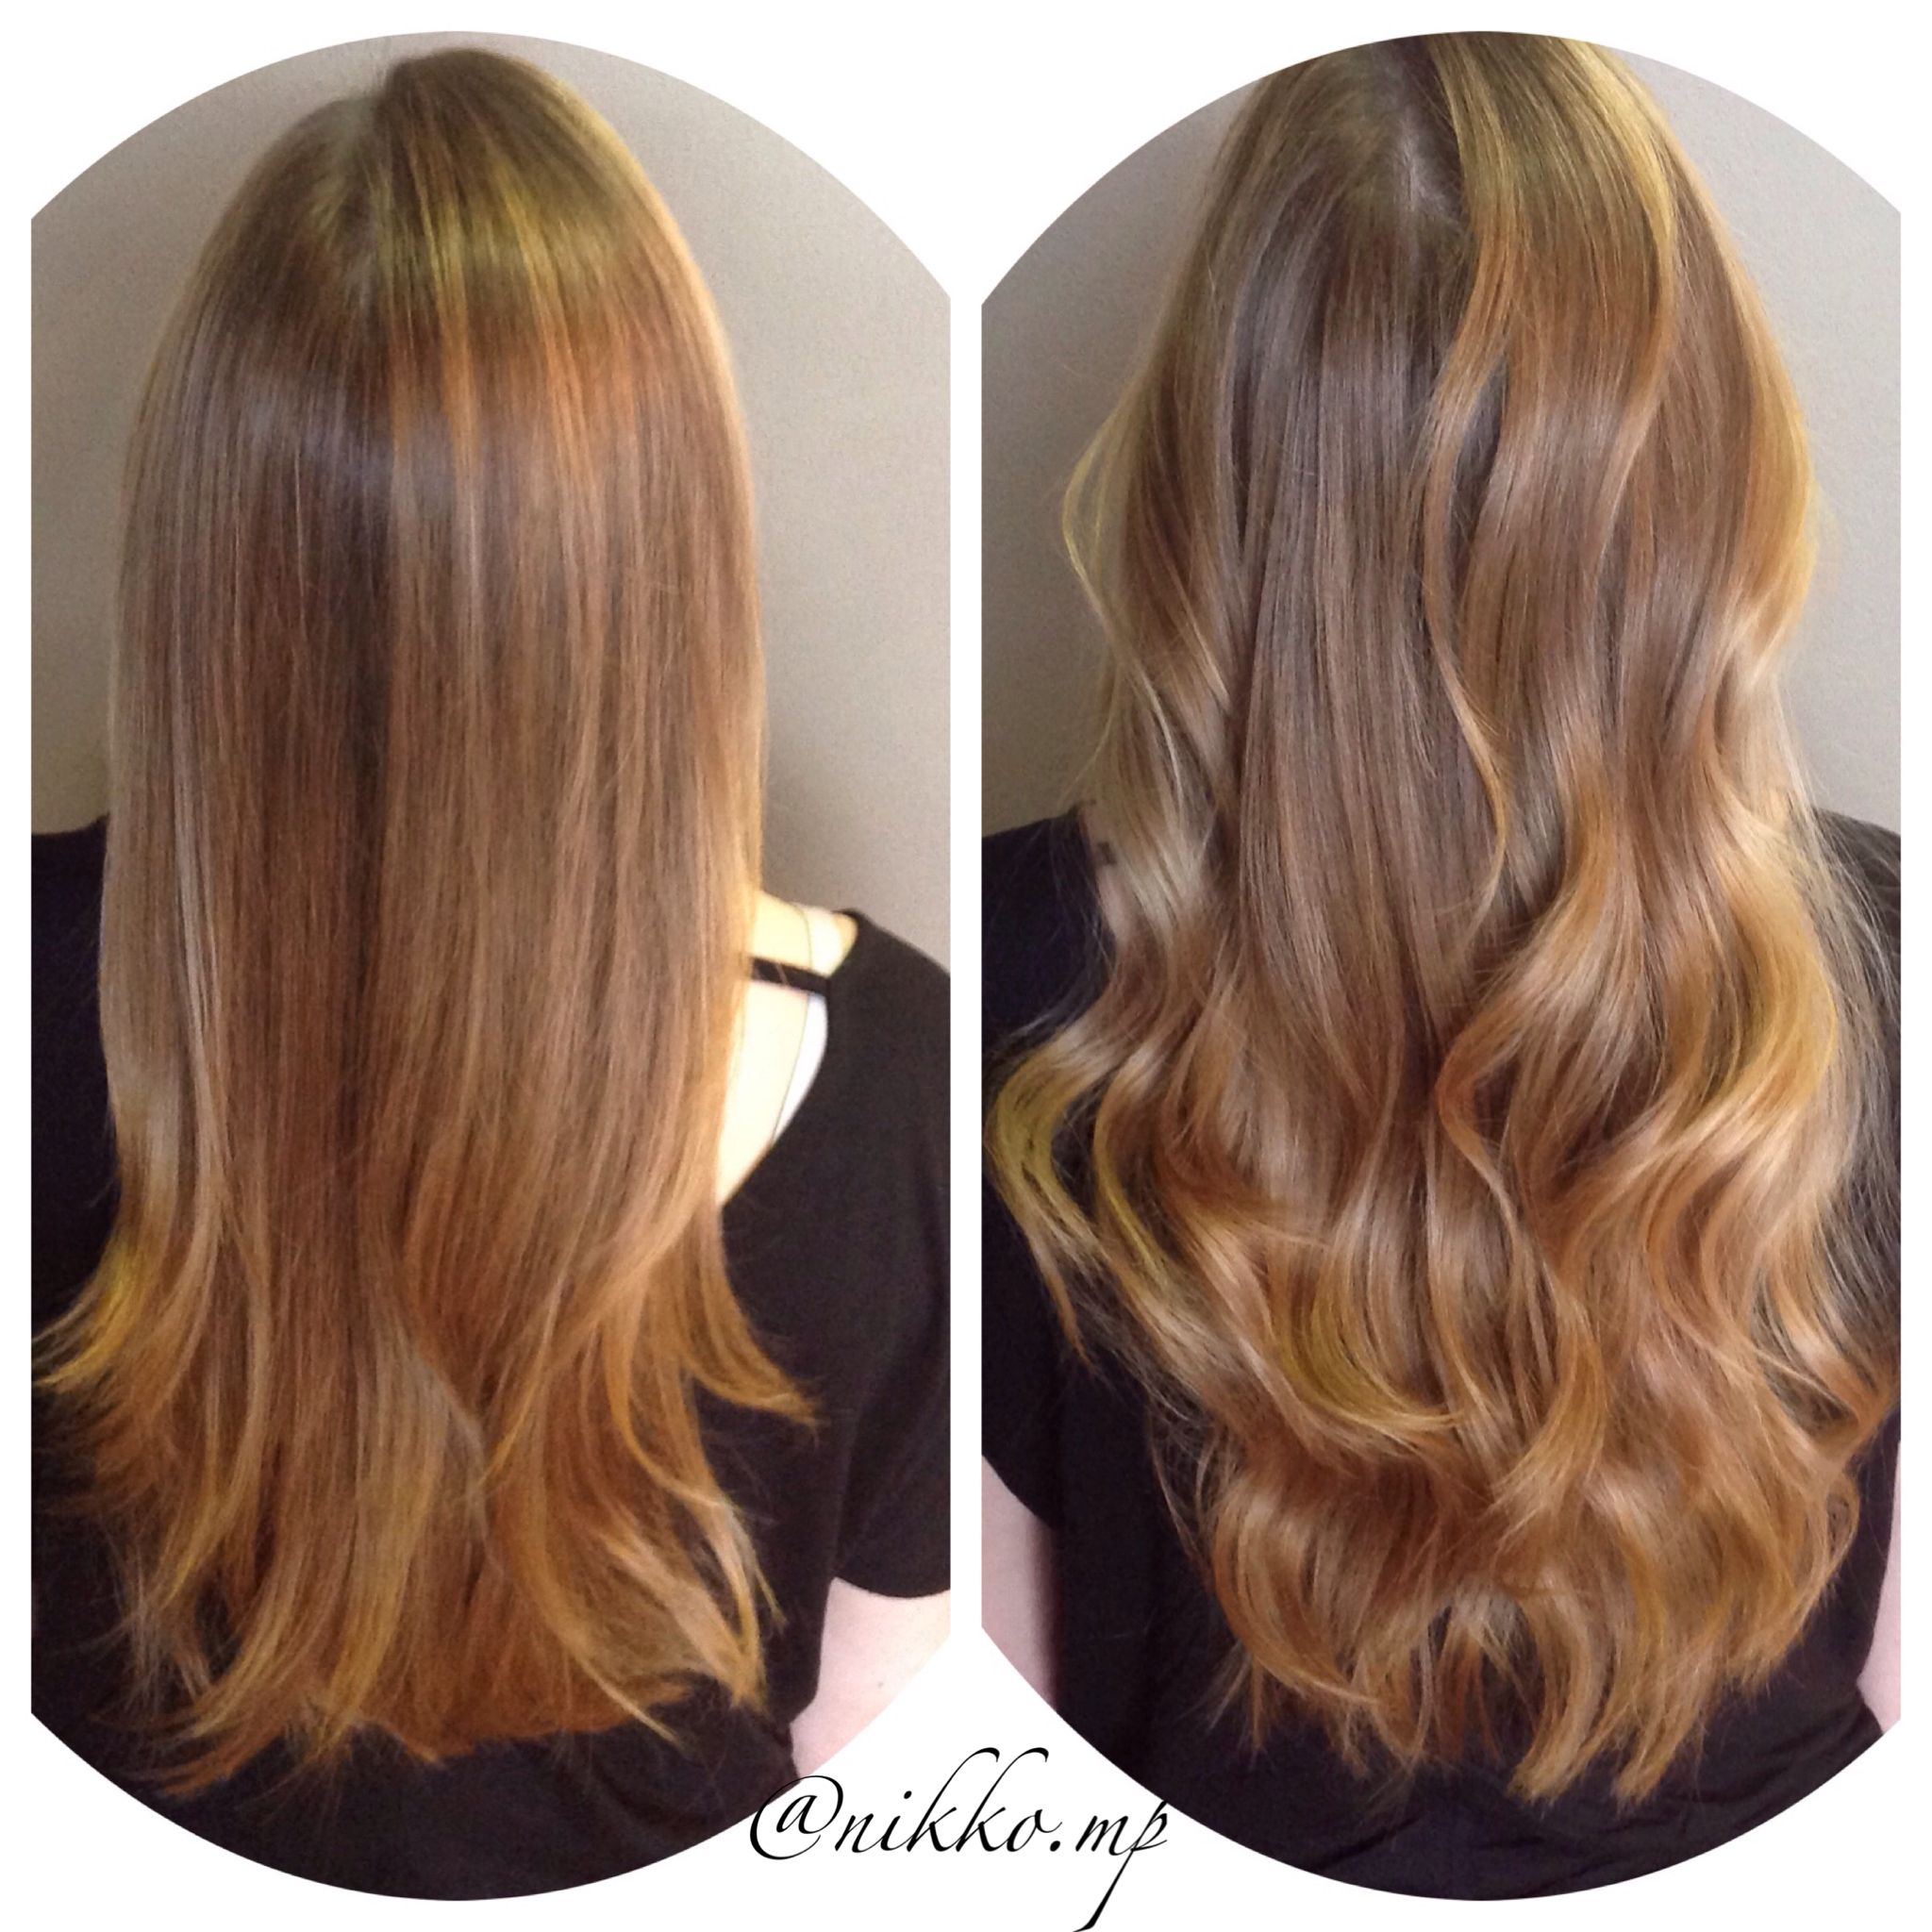 Behind The Chair Ombre Straight Vs Curled Balayage Highlights Ombré Behind The